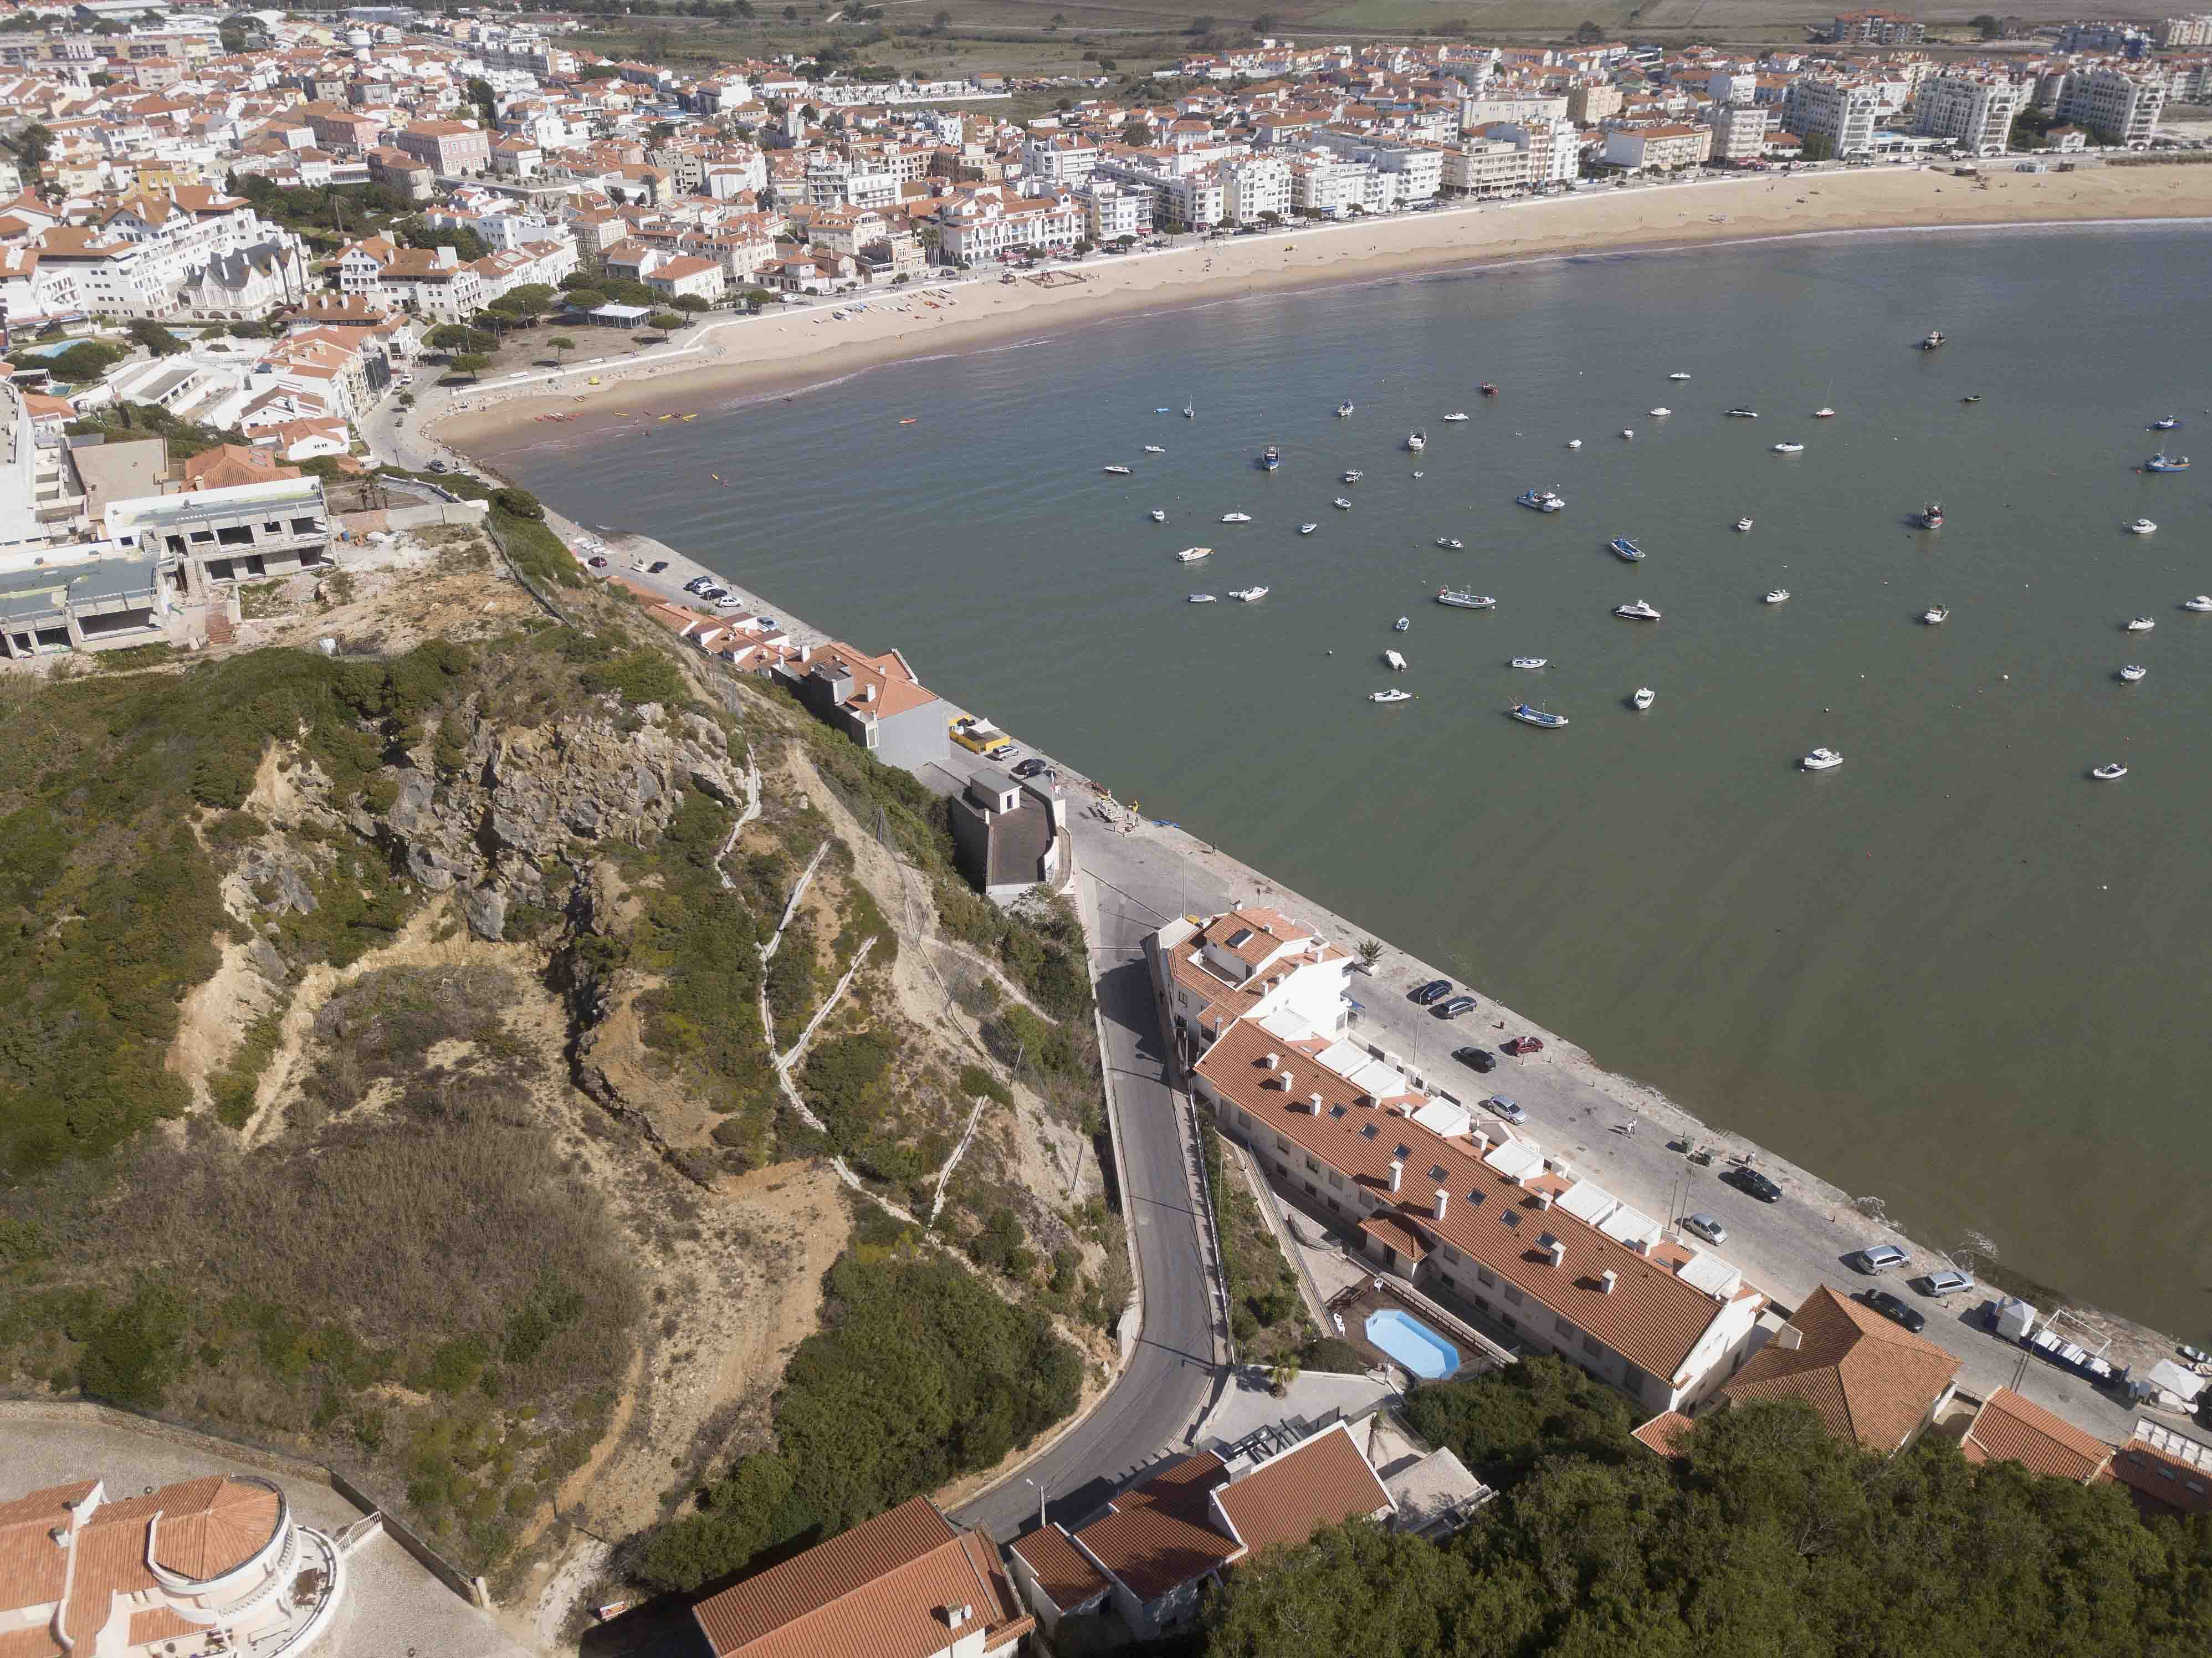 23-cais-sao-martinho-porto-silver-coast-new-buil-construction-portugal-for-sale